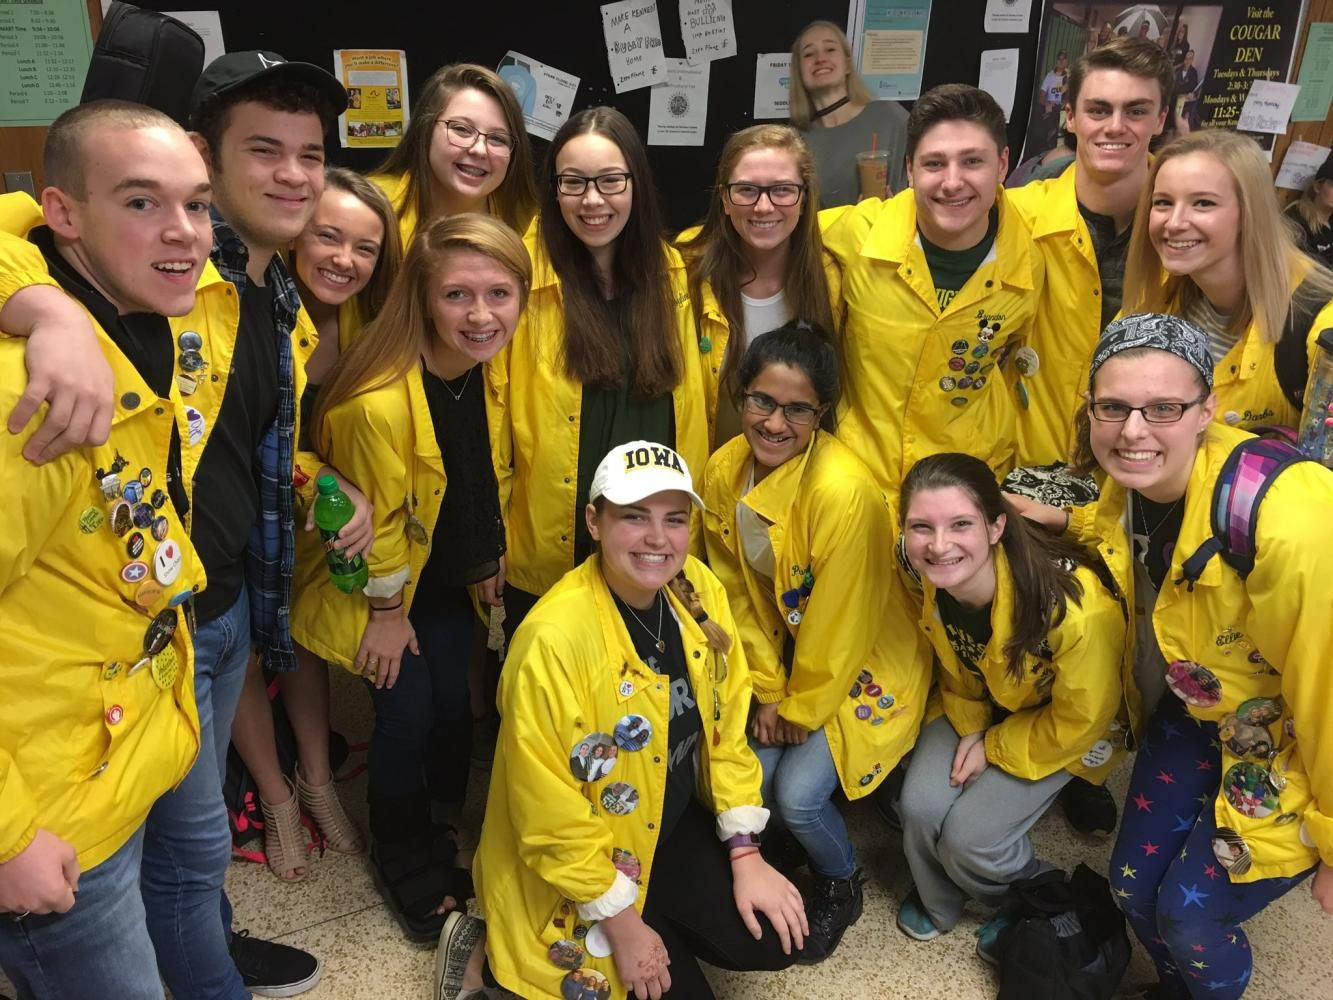 Happiness Show Choir presented Joyline with an official jacket.